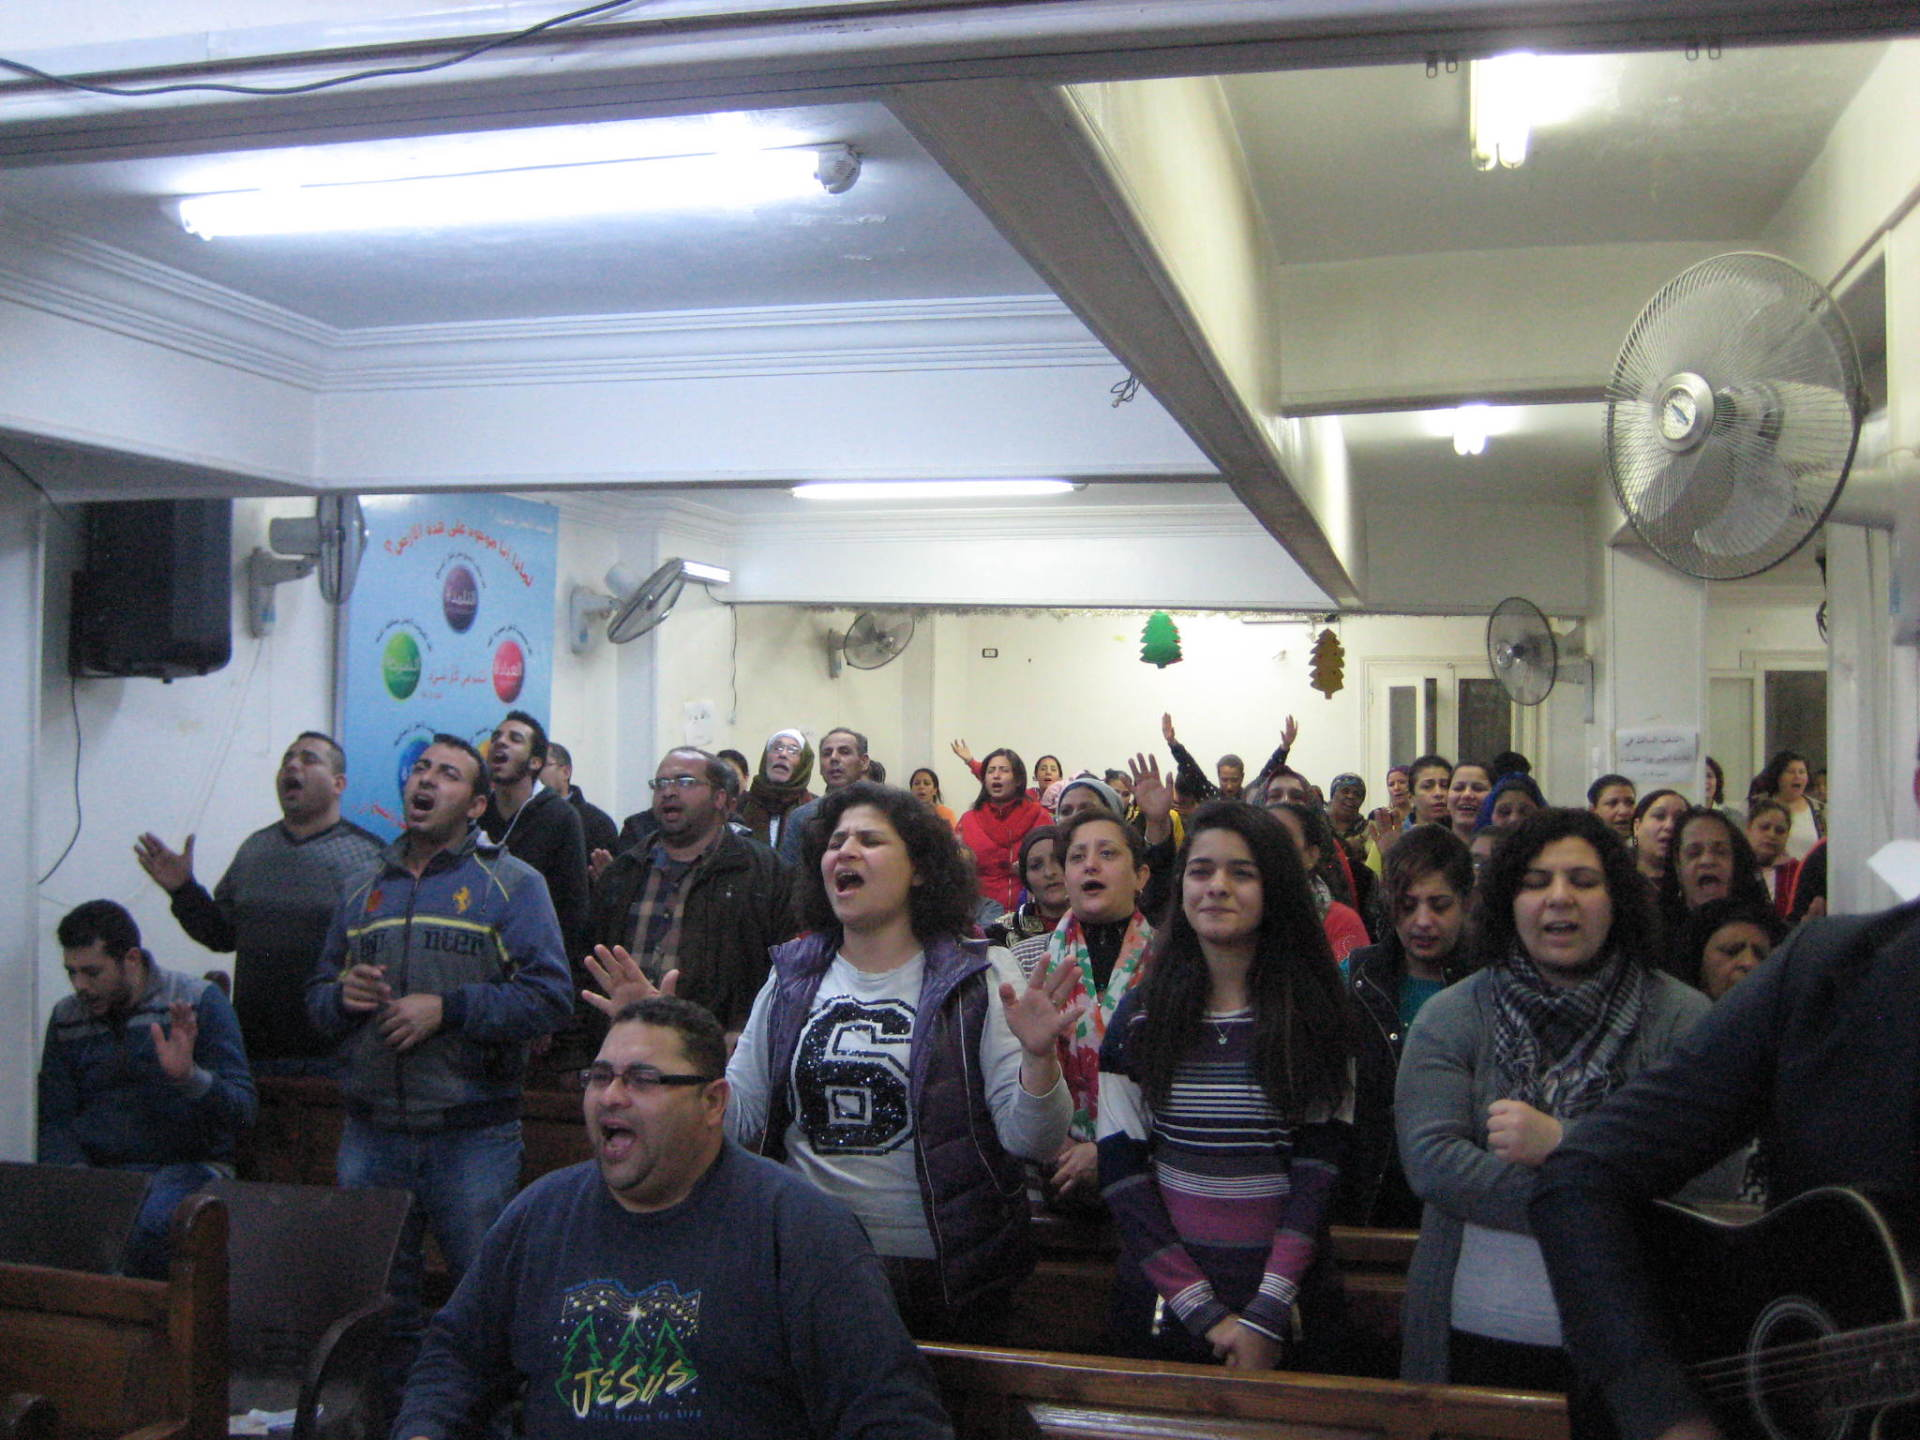 Faith Evangelical Church - El Nozha, Egypt